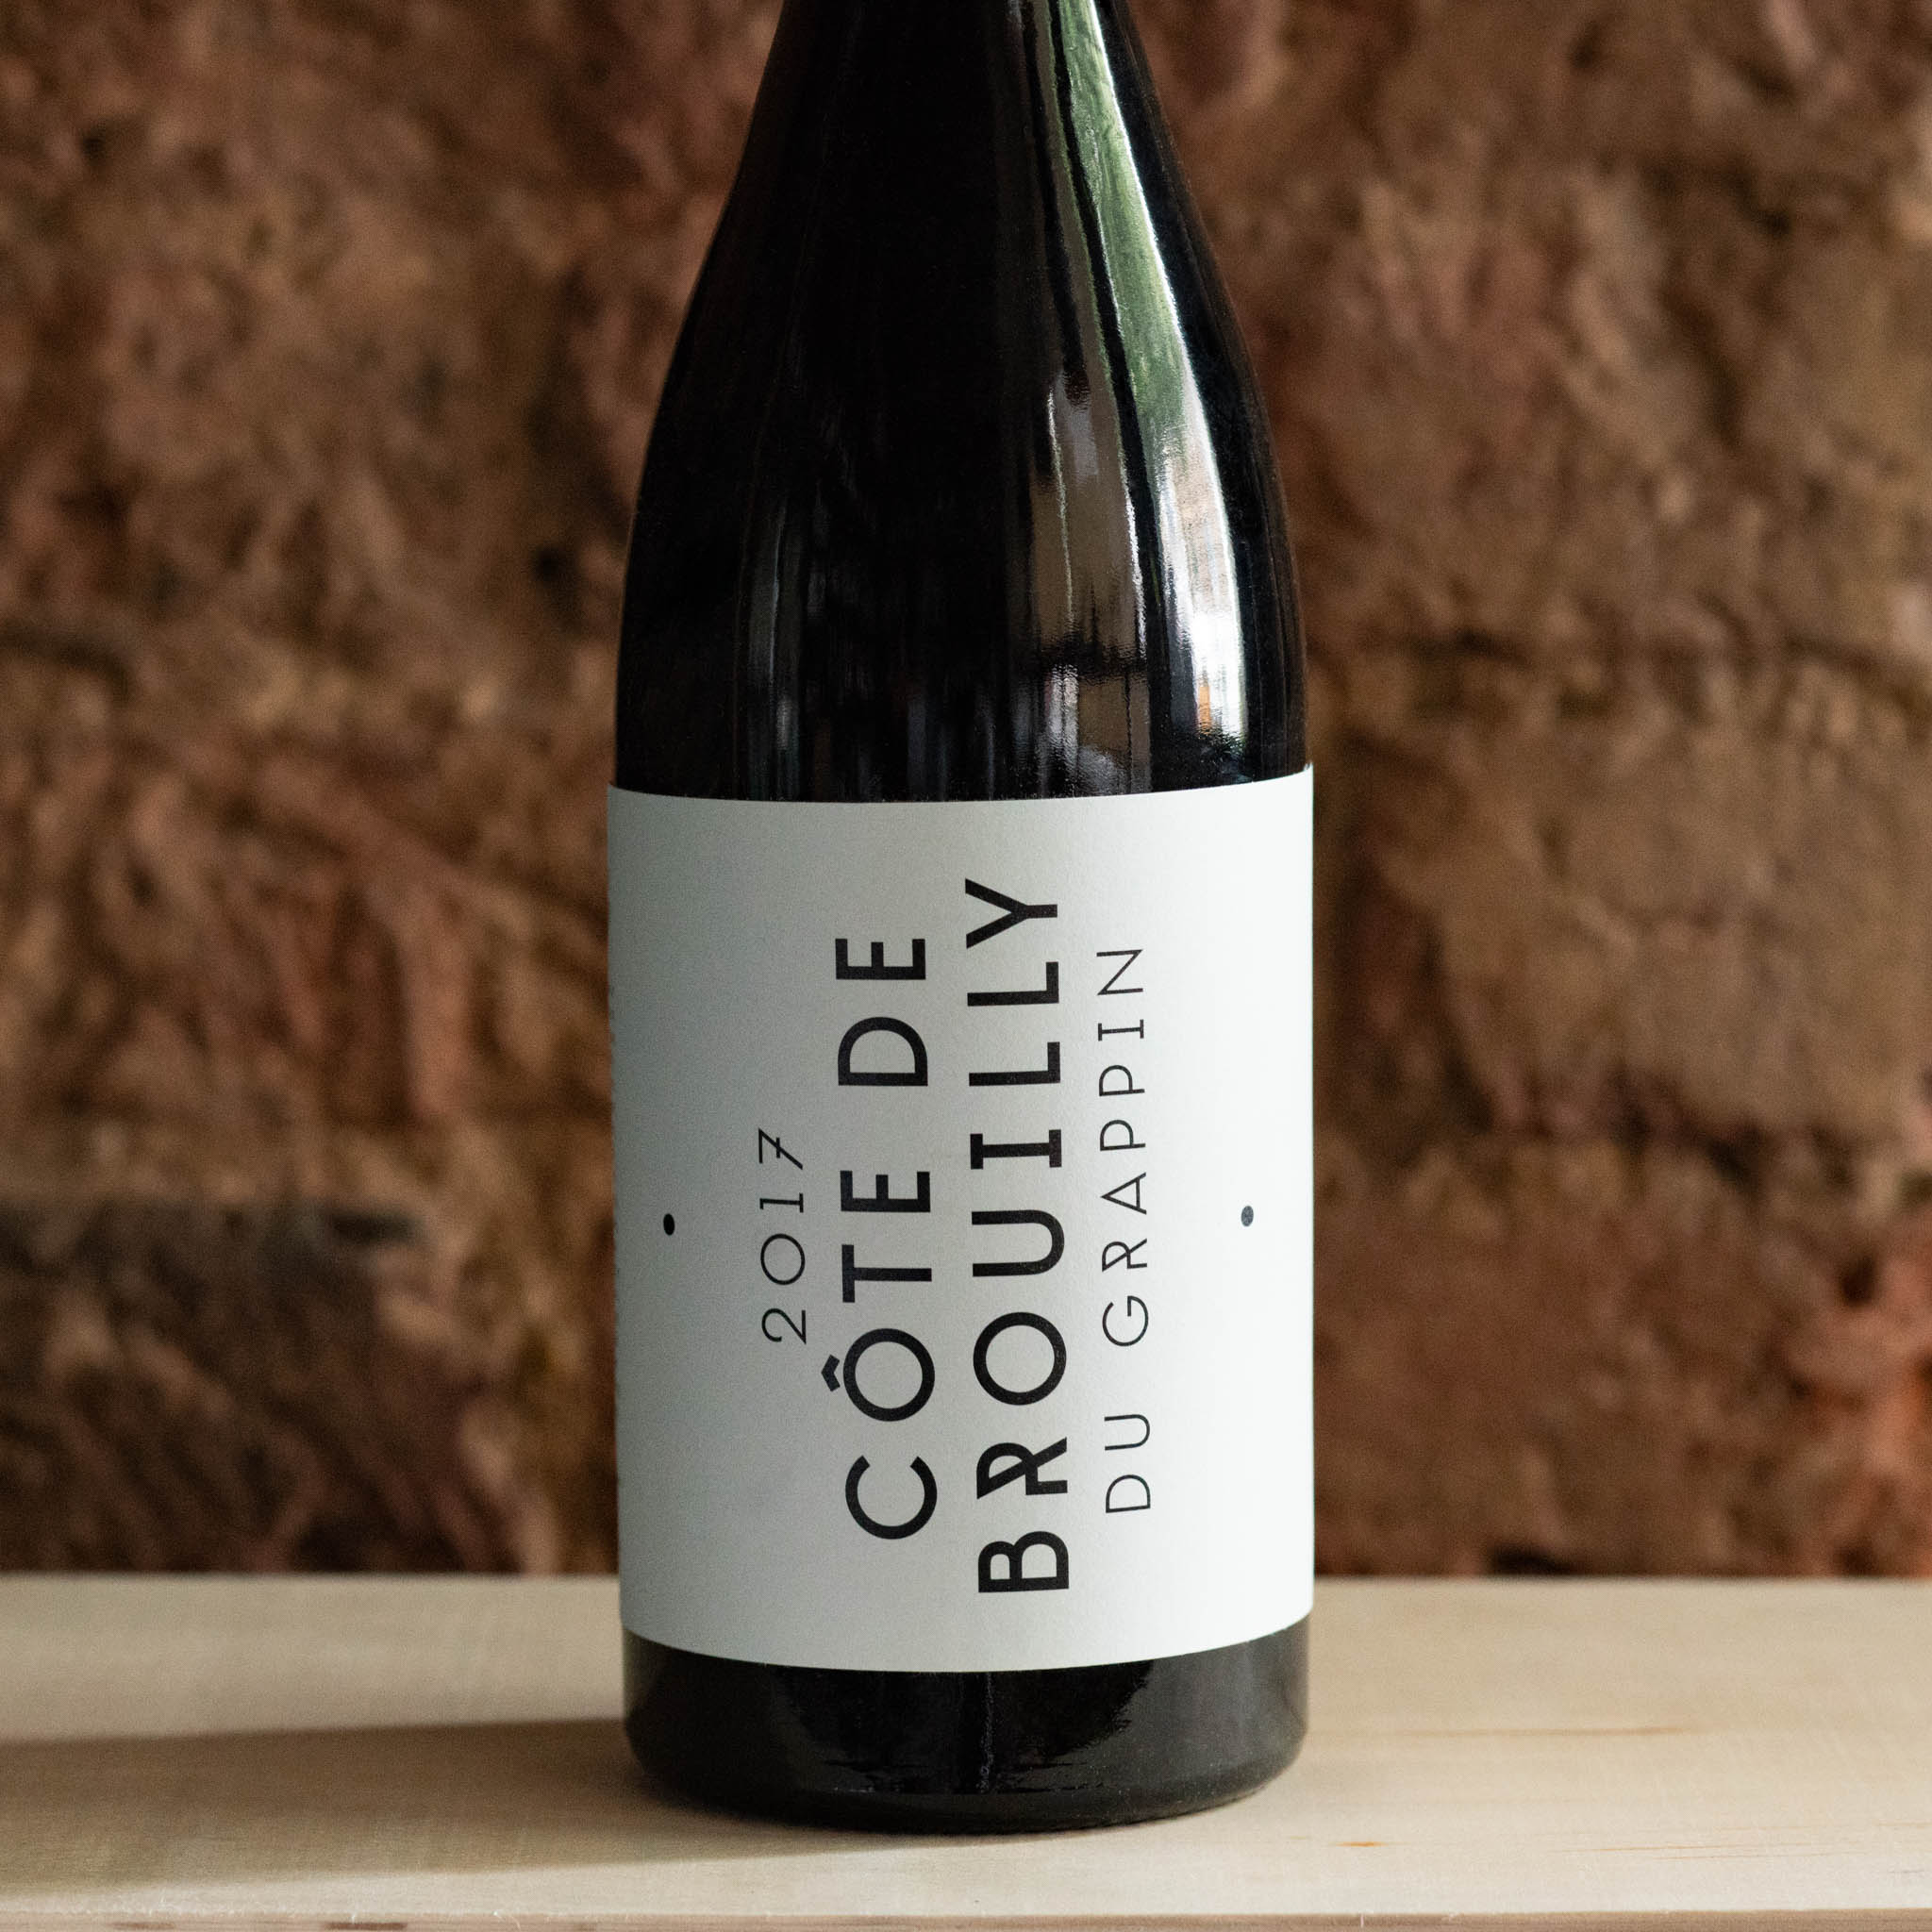 Cote-de-Brouilly 2017, Le Grappin, France - Vindinista